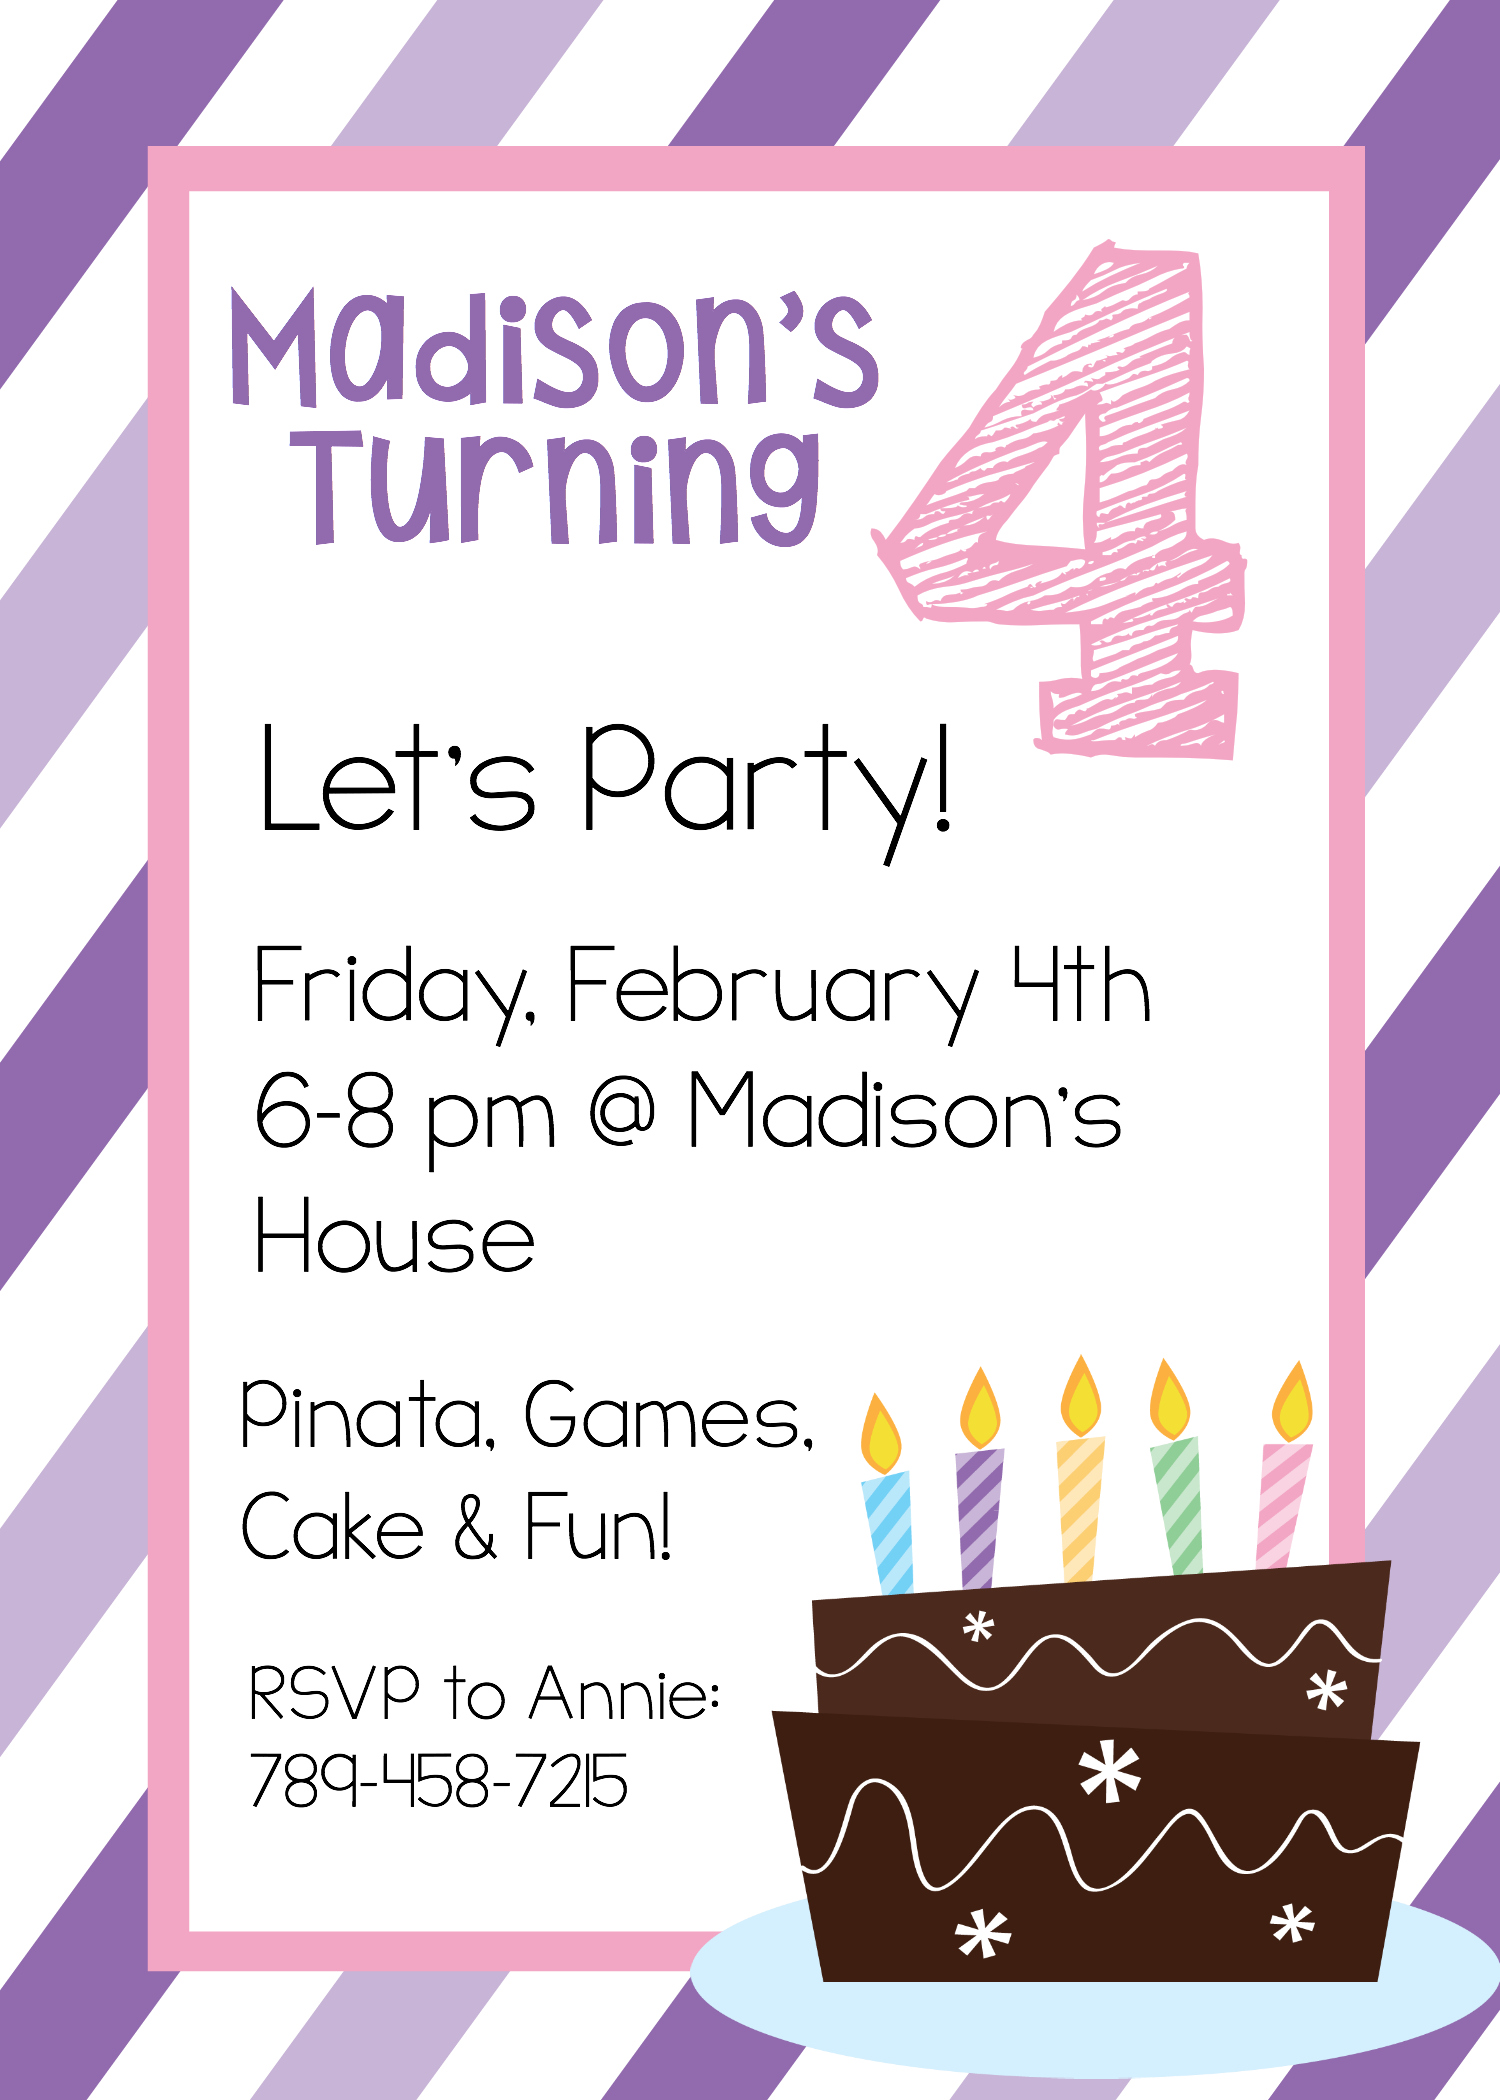 13th birthday party invitations templates free ; 3Rd-Birthday-Party-Invitations-combined-with-your-creativity-will-make-this-looks-awesome-13